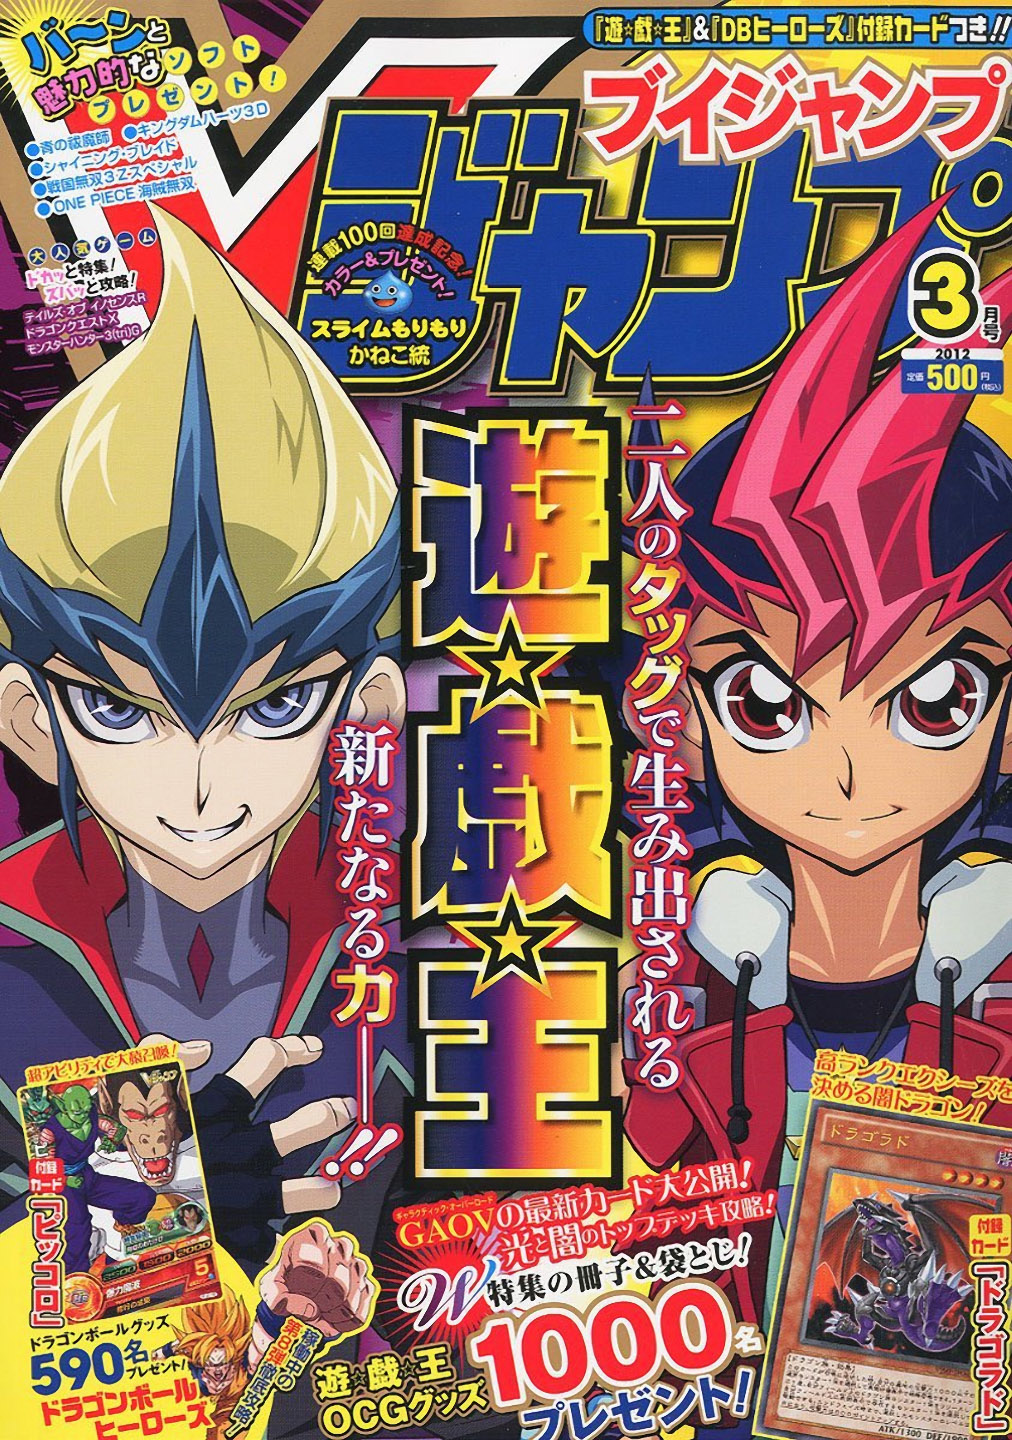 V Jump March 2012 promotional card